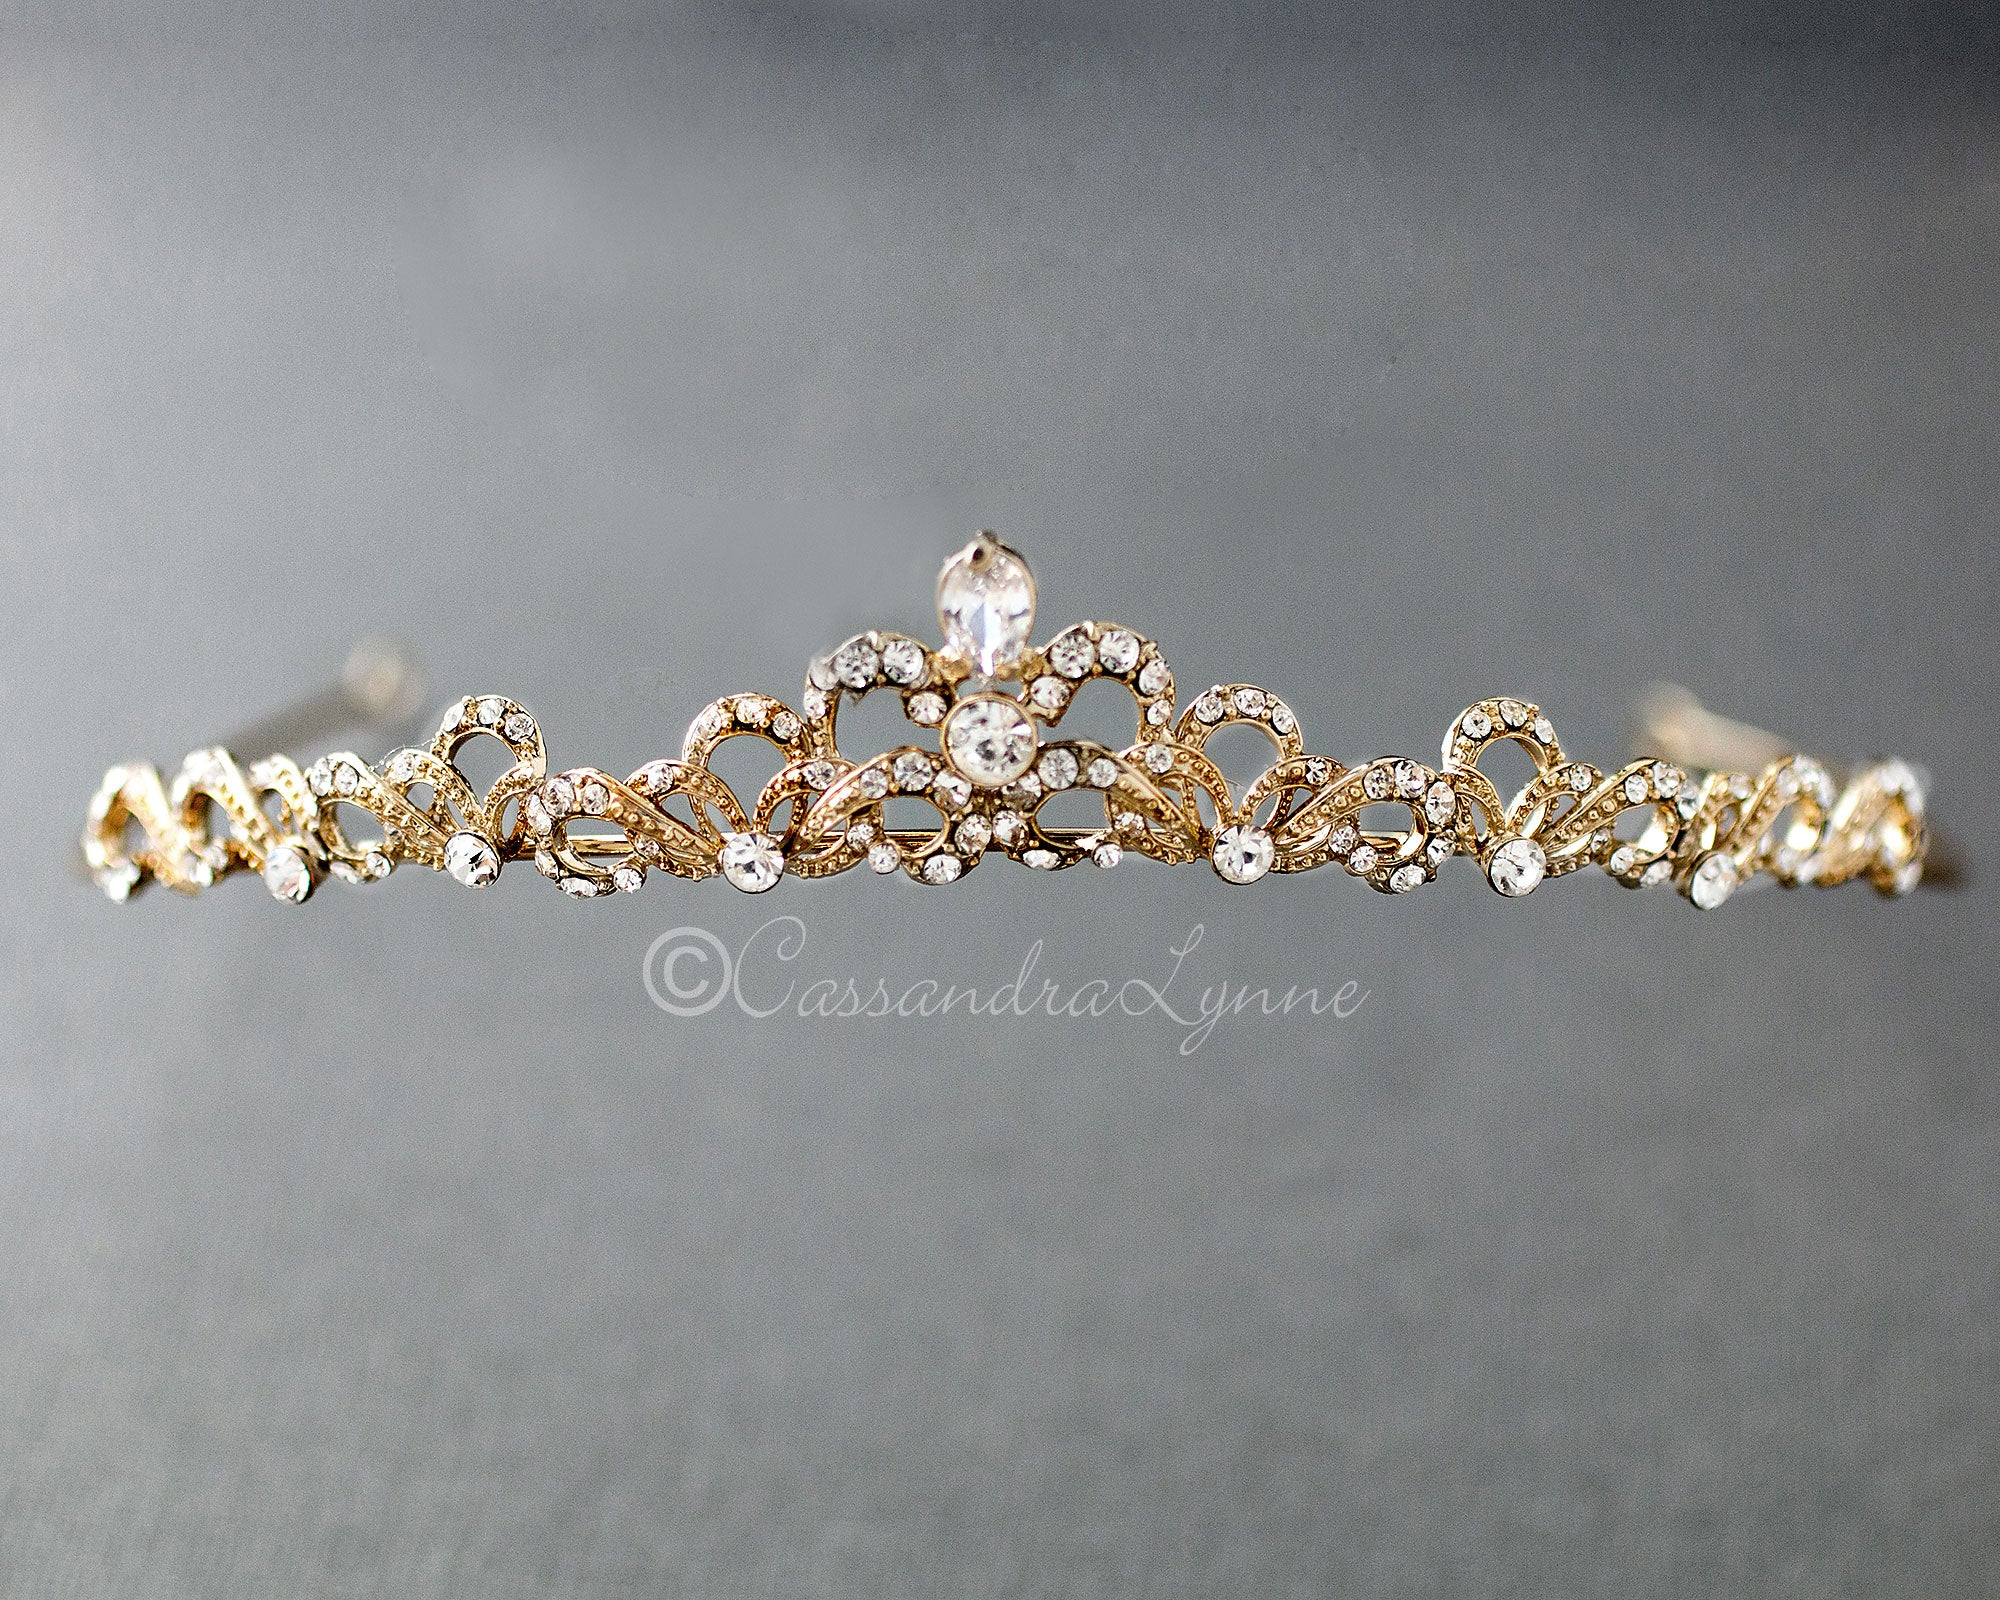 Petite Tiara of Gold Scrolls and Pear Stone